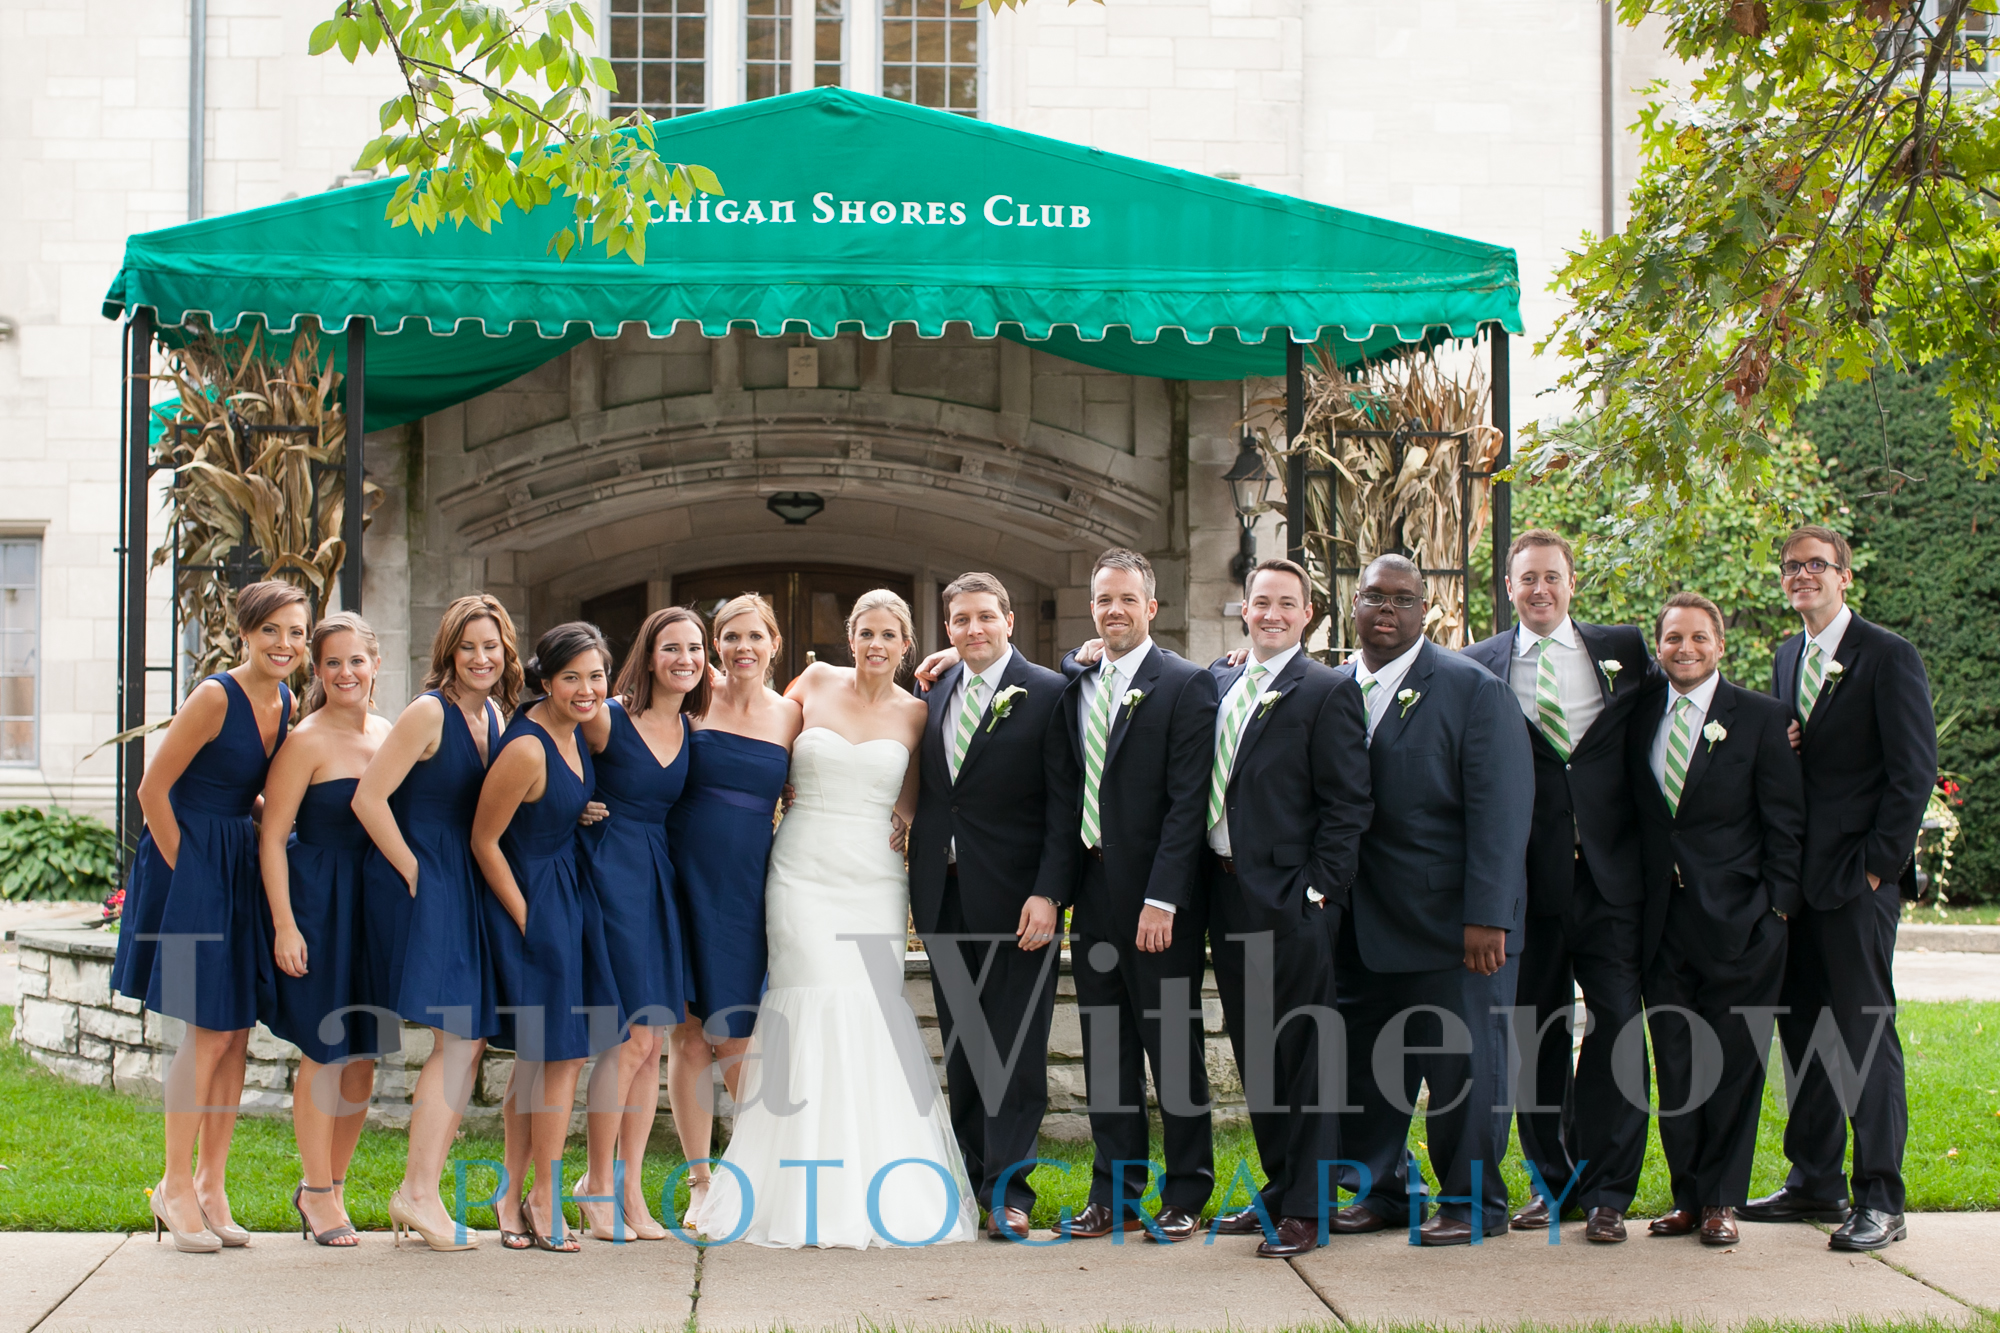 michigan-shores-club-wedding